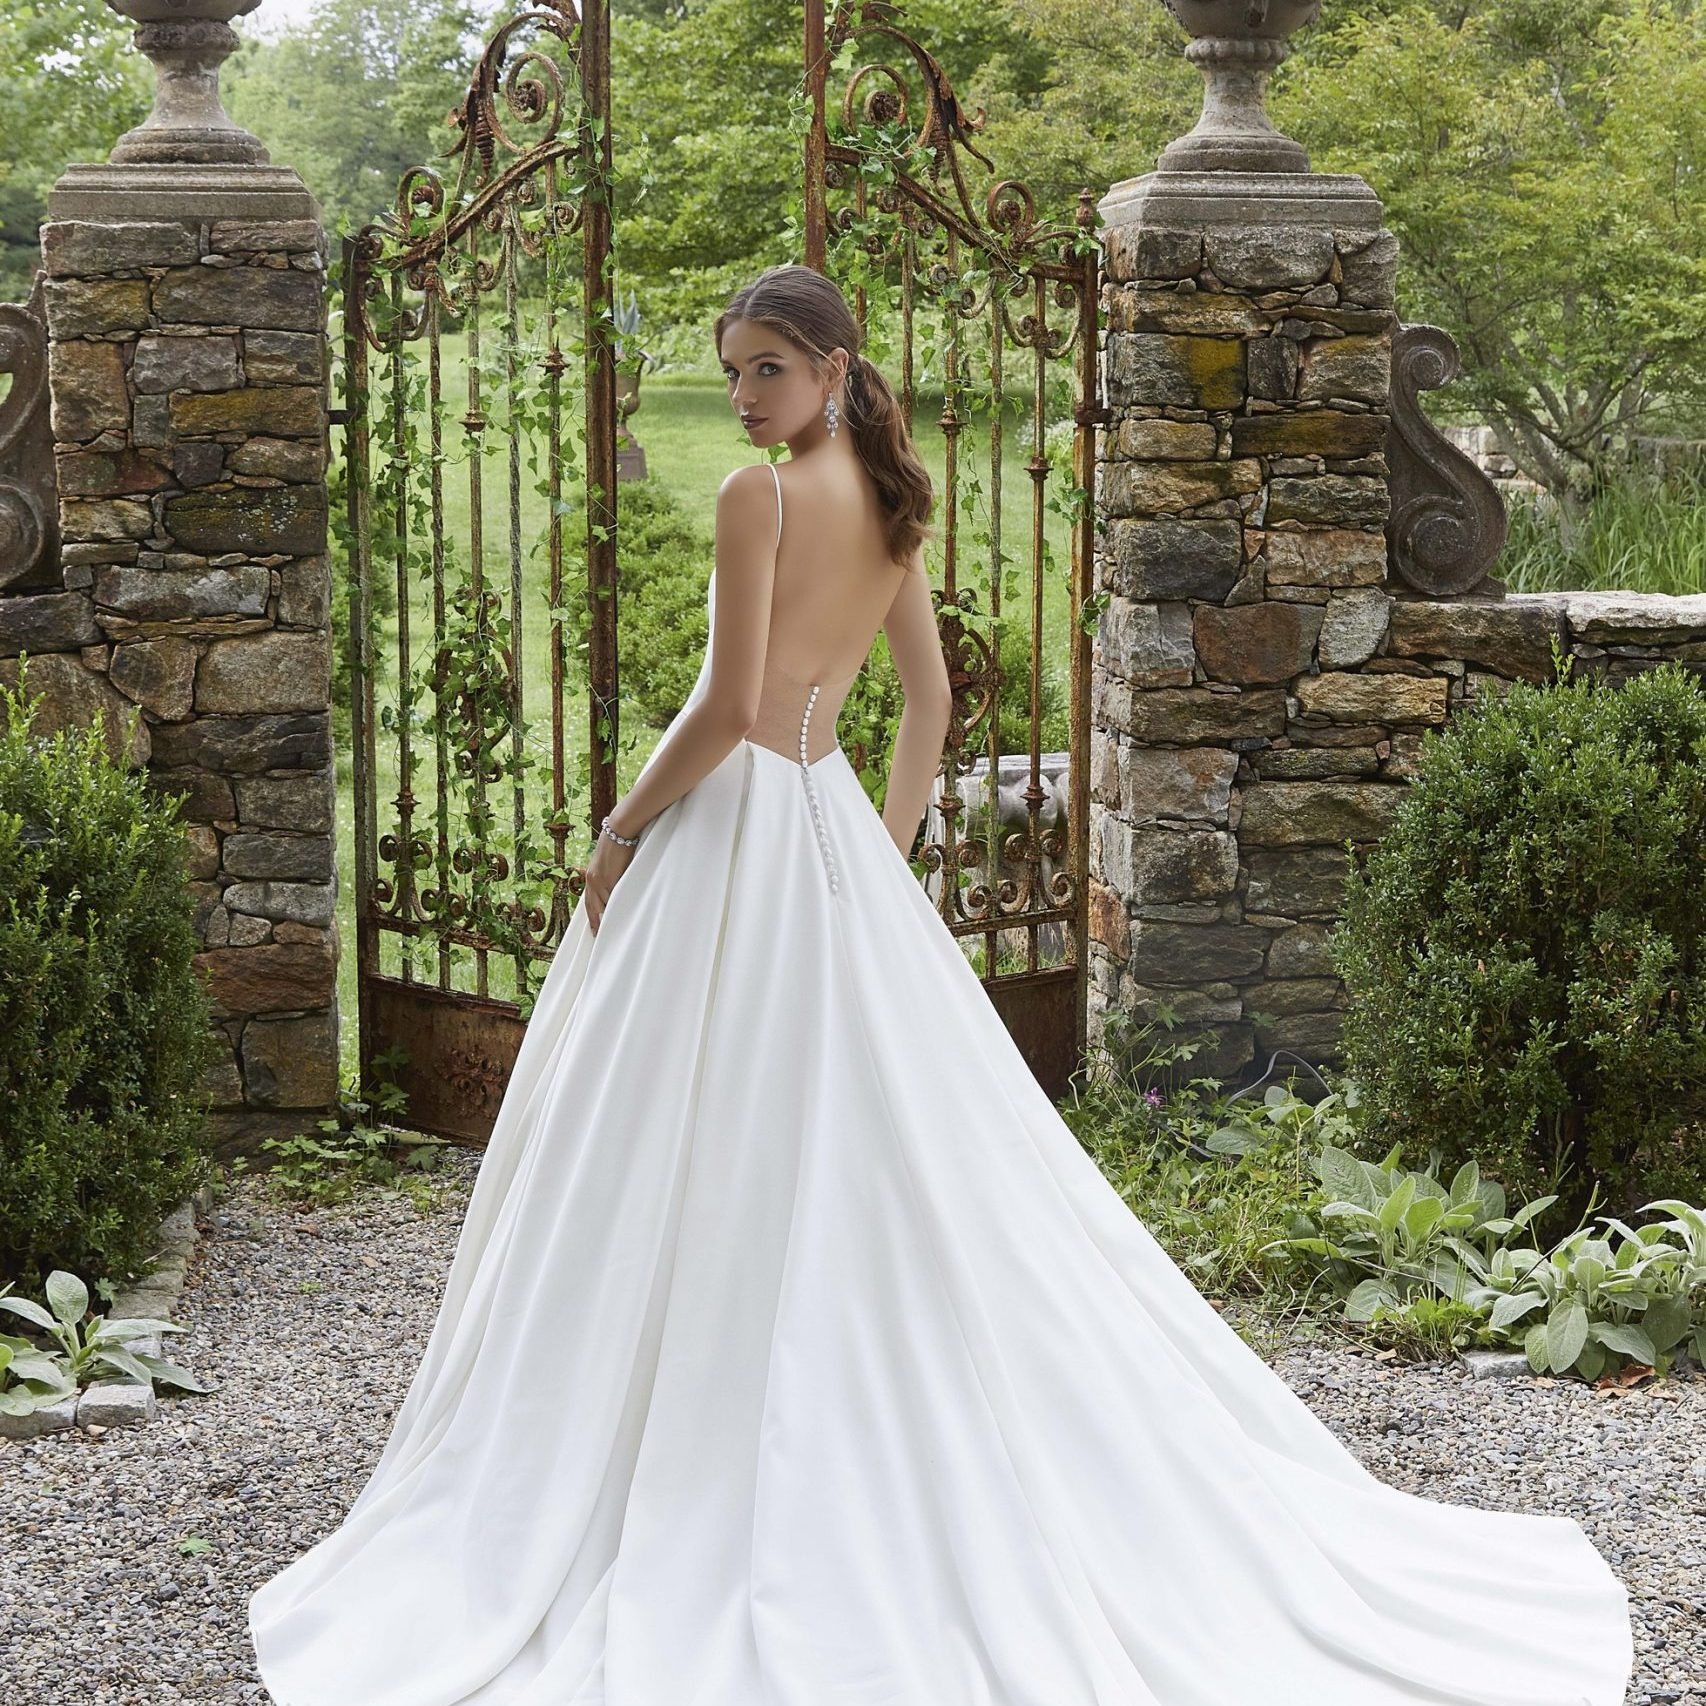 Wedding dress by Morilee at Perfect Day Bridal.